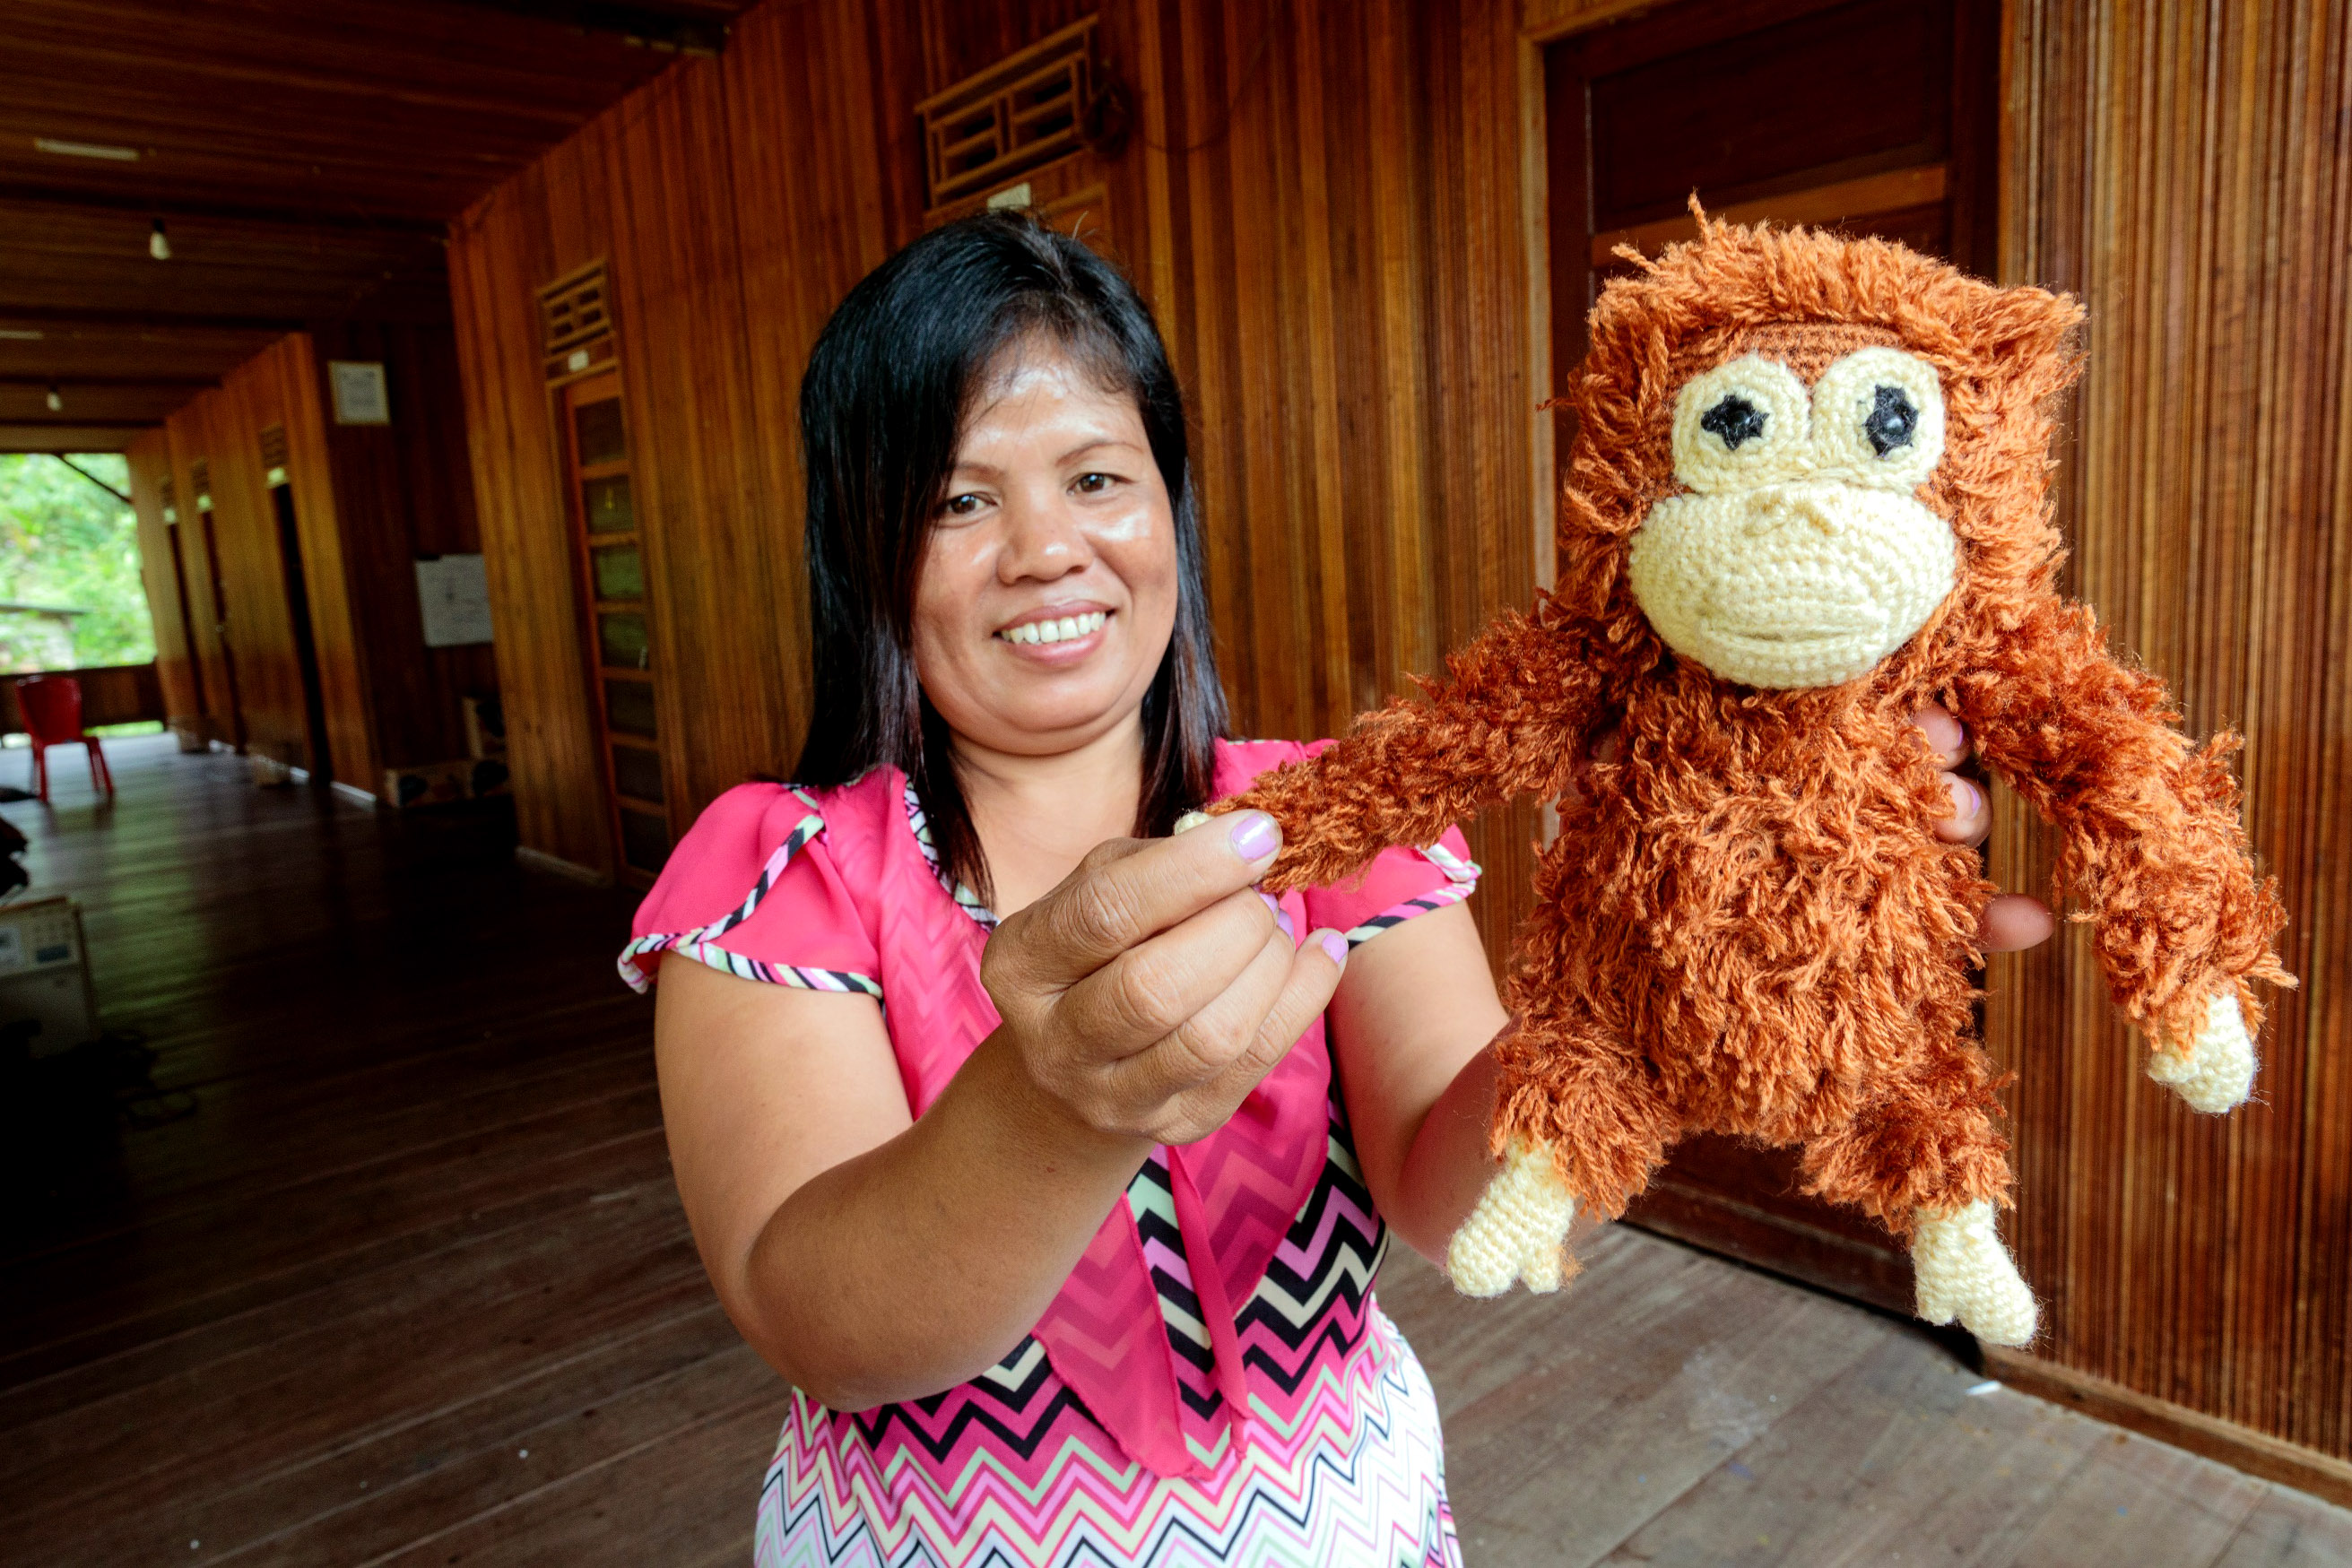 Tati on the veranda of the eco-tourism project long house showing a woollen orangutan doll she made to sell to tourists. Photo: Richard Wainwright/Caritas Australia.